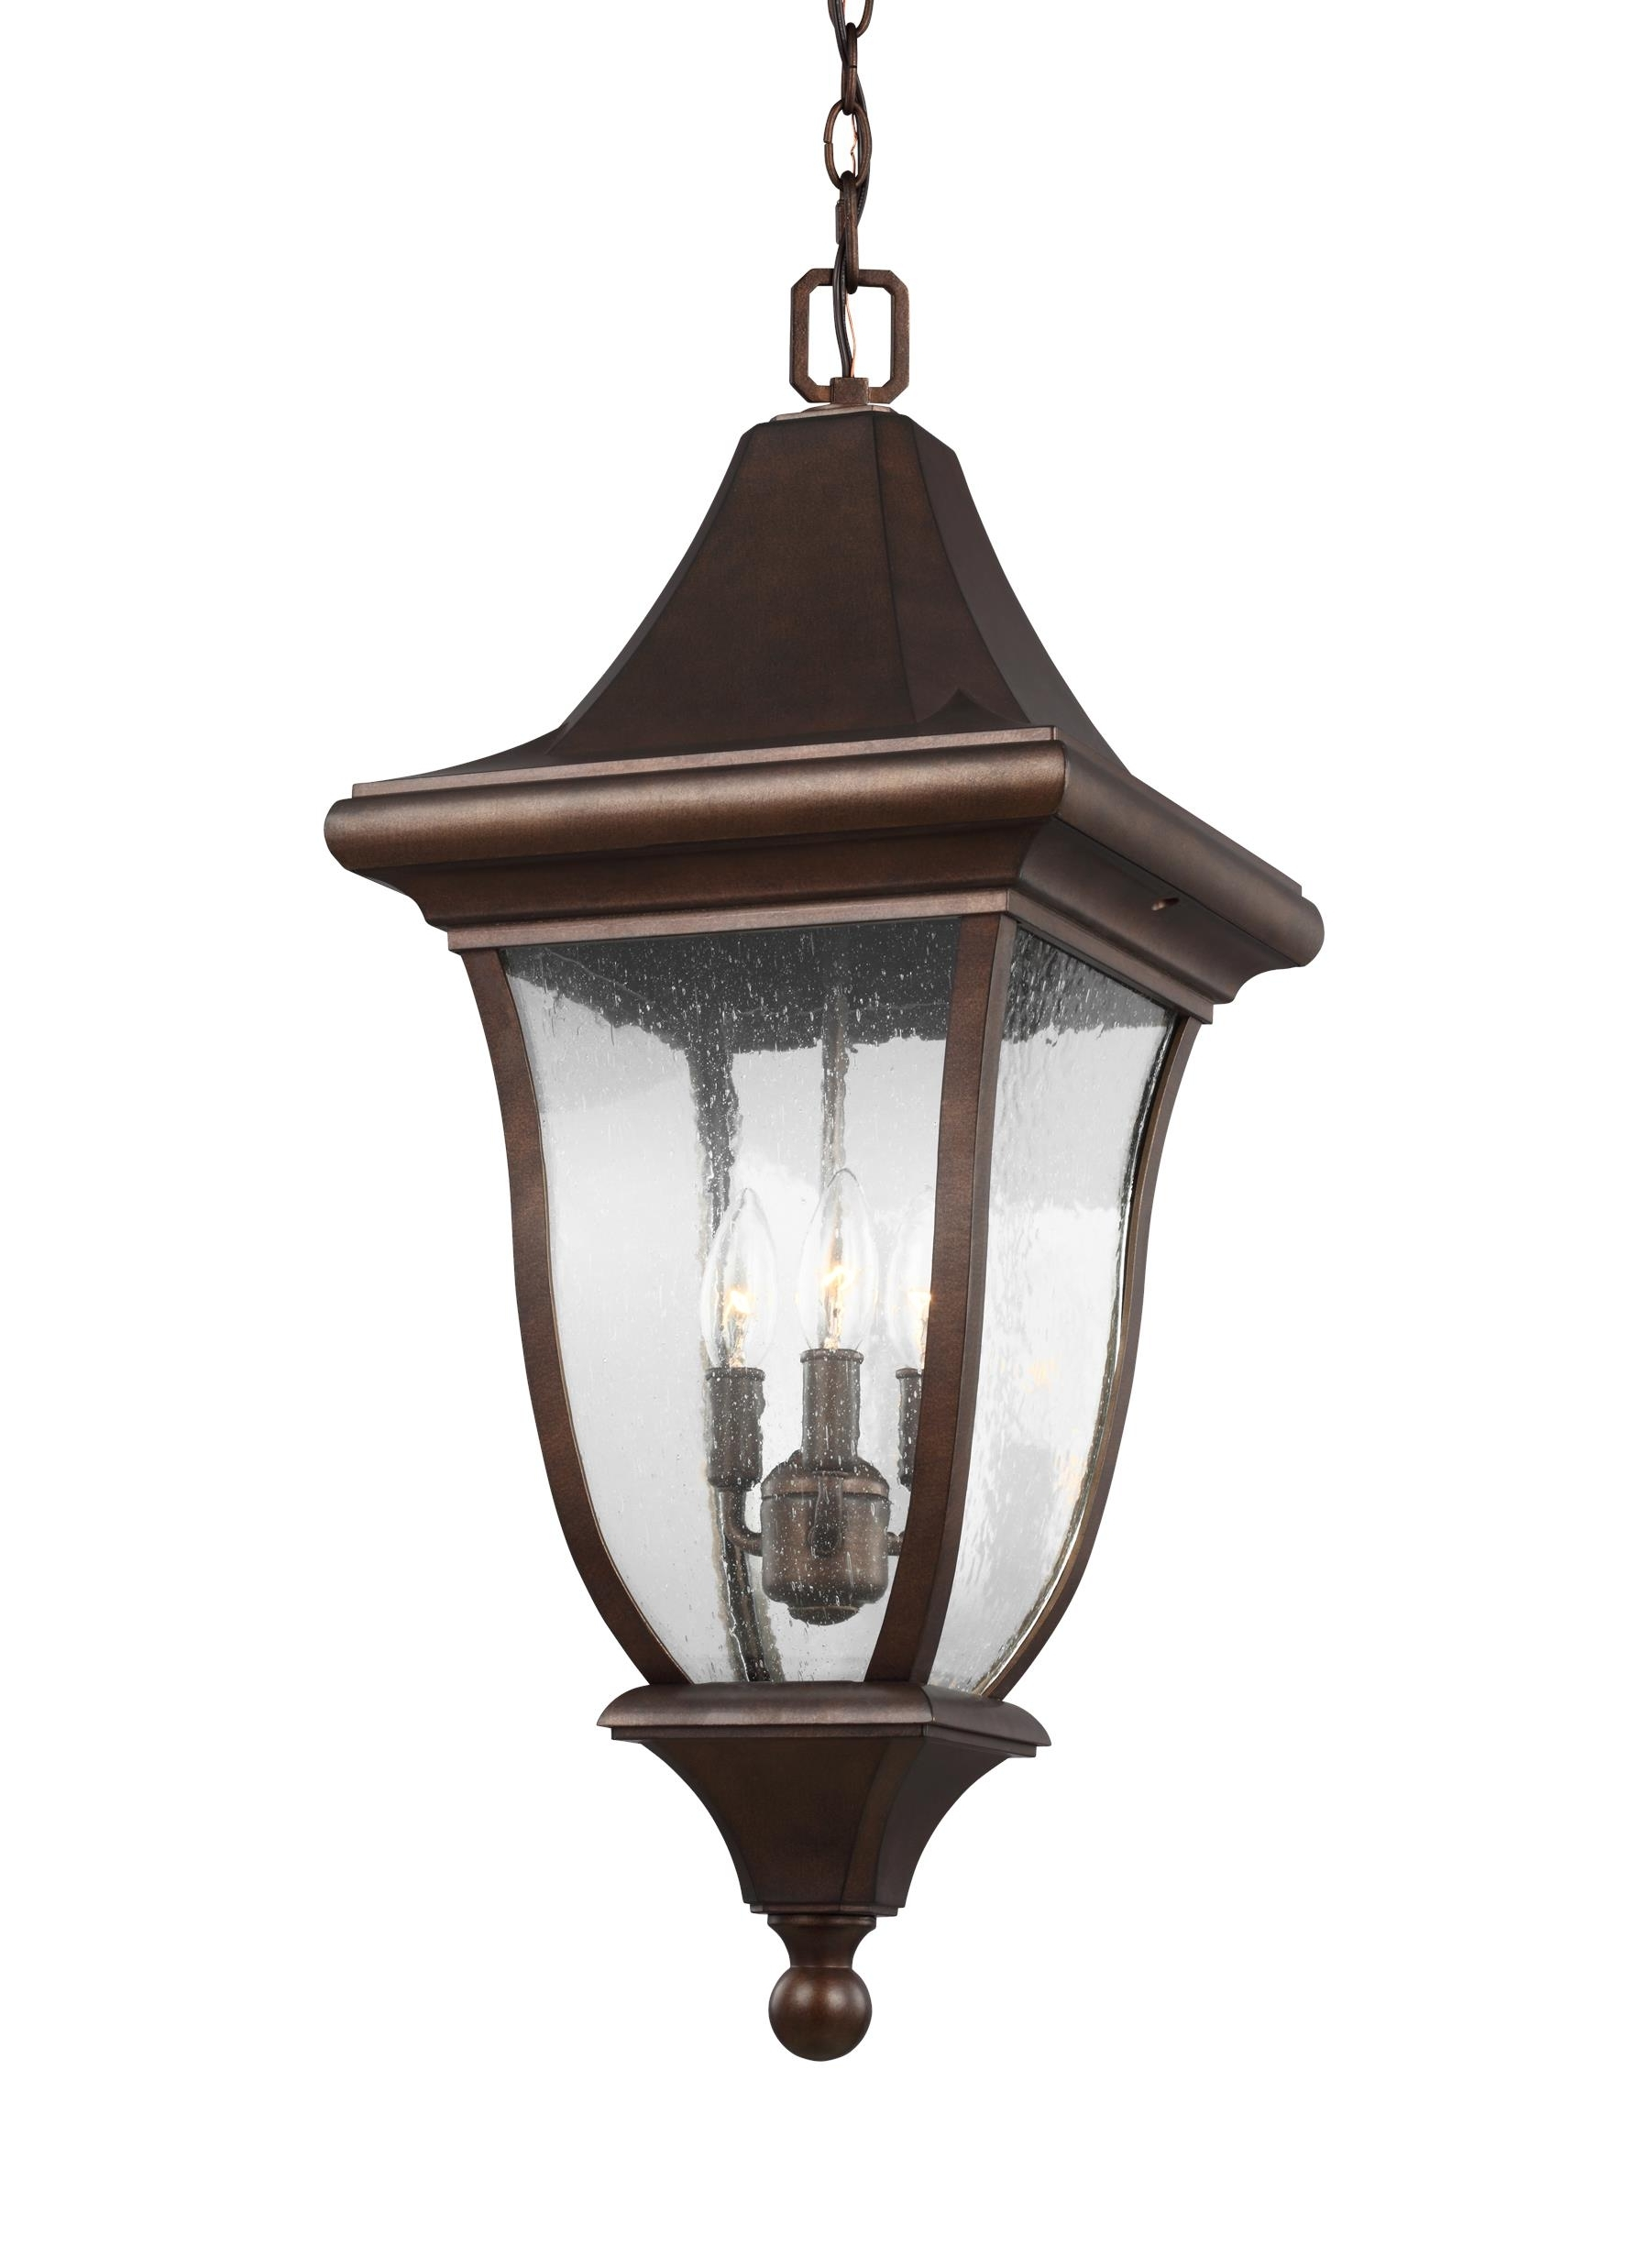 Ol13109Ptbz,3 – Light Outdoor Pendant Lantern,patina Bronze Pertaining To Latest Lamps Plus Outdoor Hanging Lights (View 12 of 20)